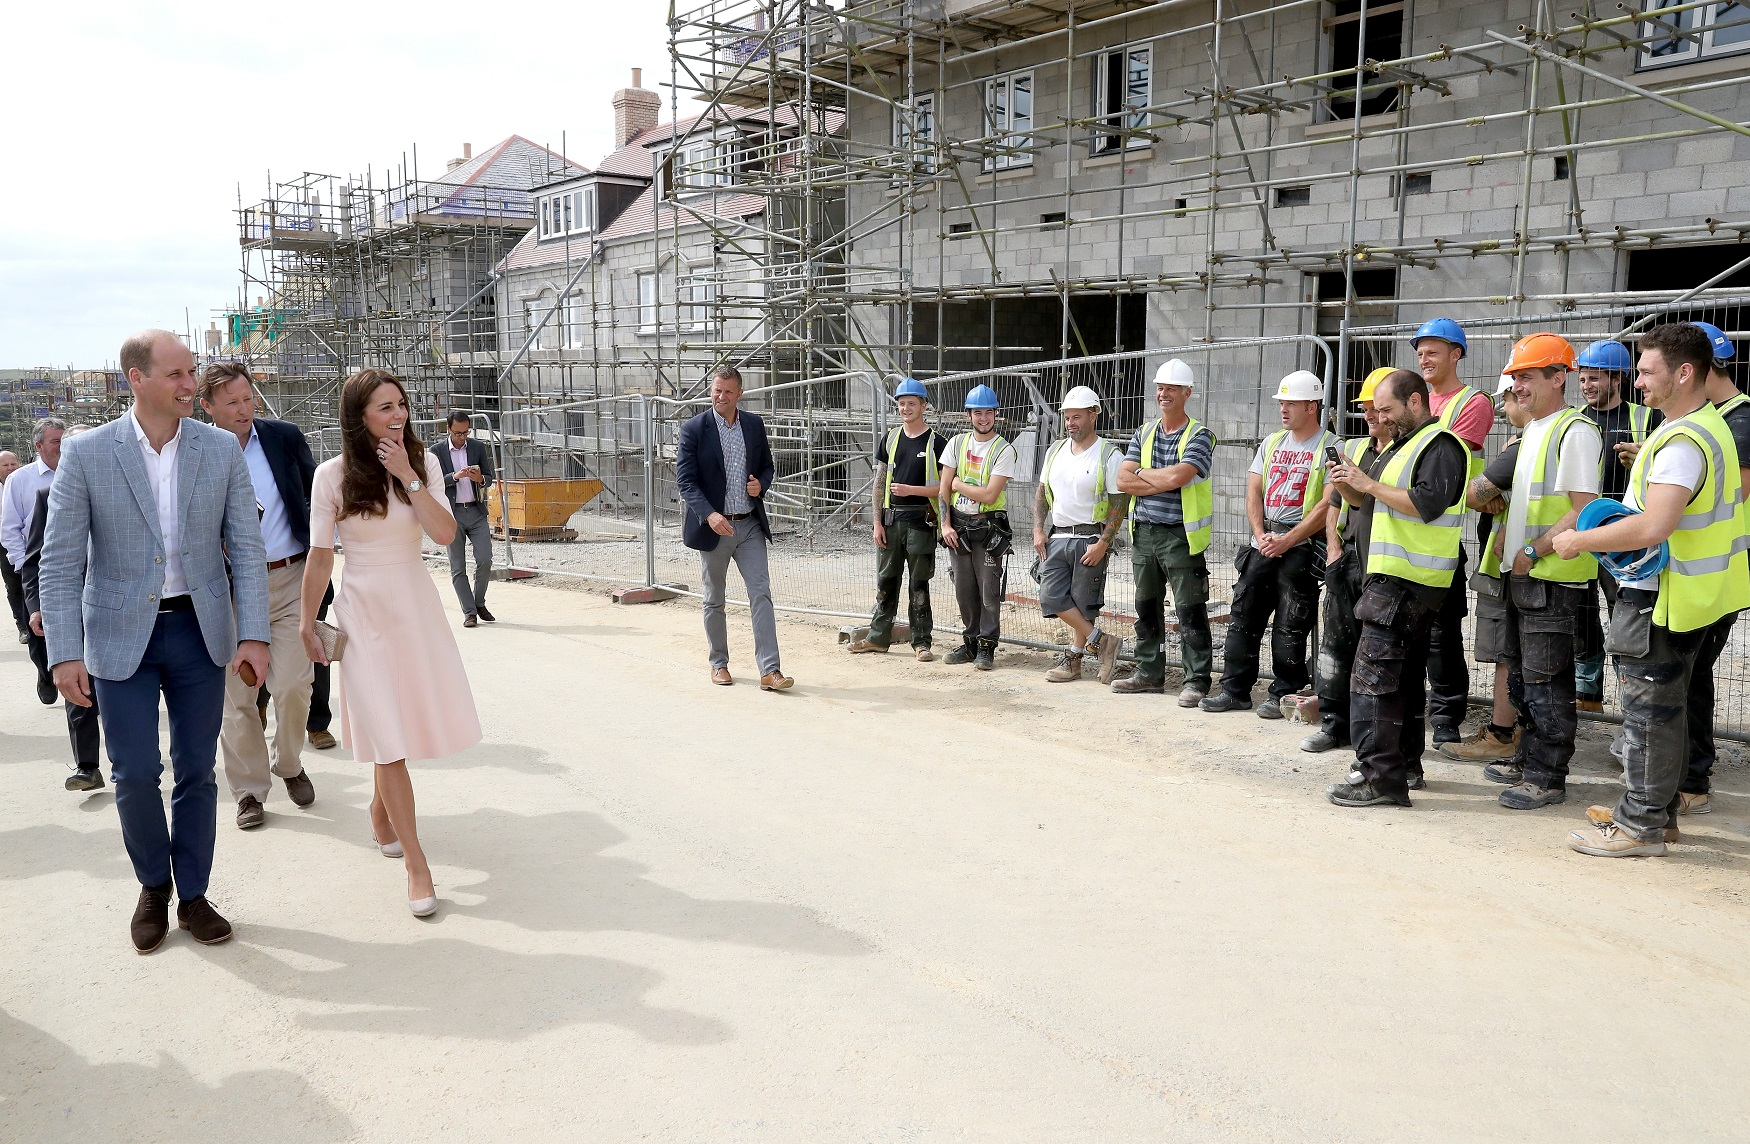 NEWQUAY, ENGLAND - SEPTEMBER 01: Prince William, Duke of Cambridge and Catherine, Duchess of Cambridge share a joke with construction workers as they visit Nansledan, a 218-hectare site that will provide future business and housing for the local area on September 1, 2016 in Newquay, United Kingdom. (Photo by Chris Jackson - WPA Pool/Getty Images)